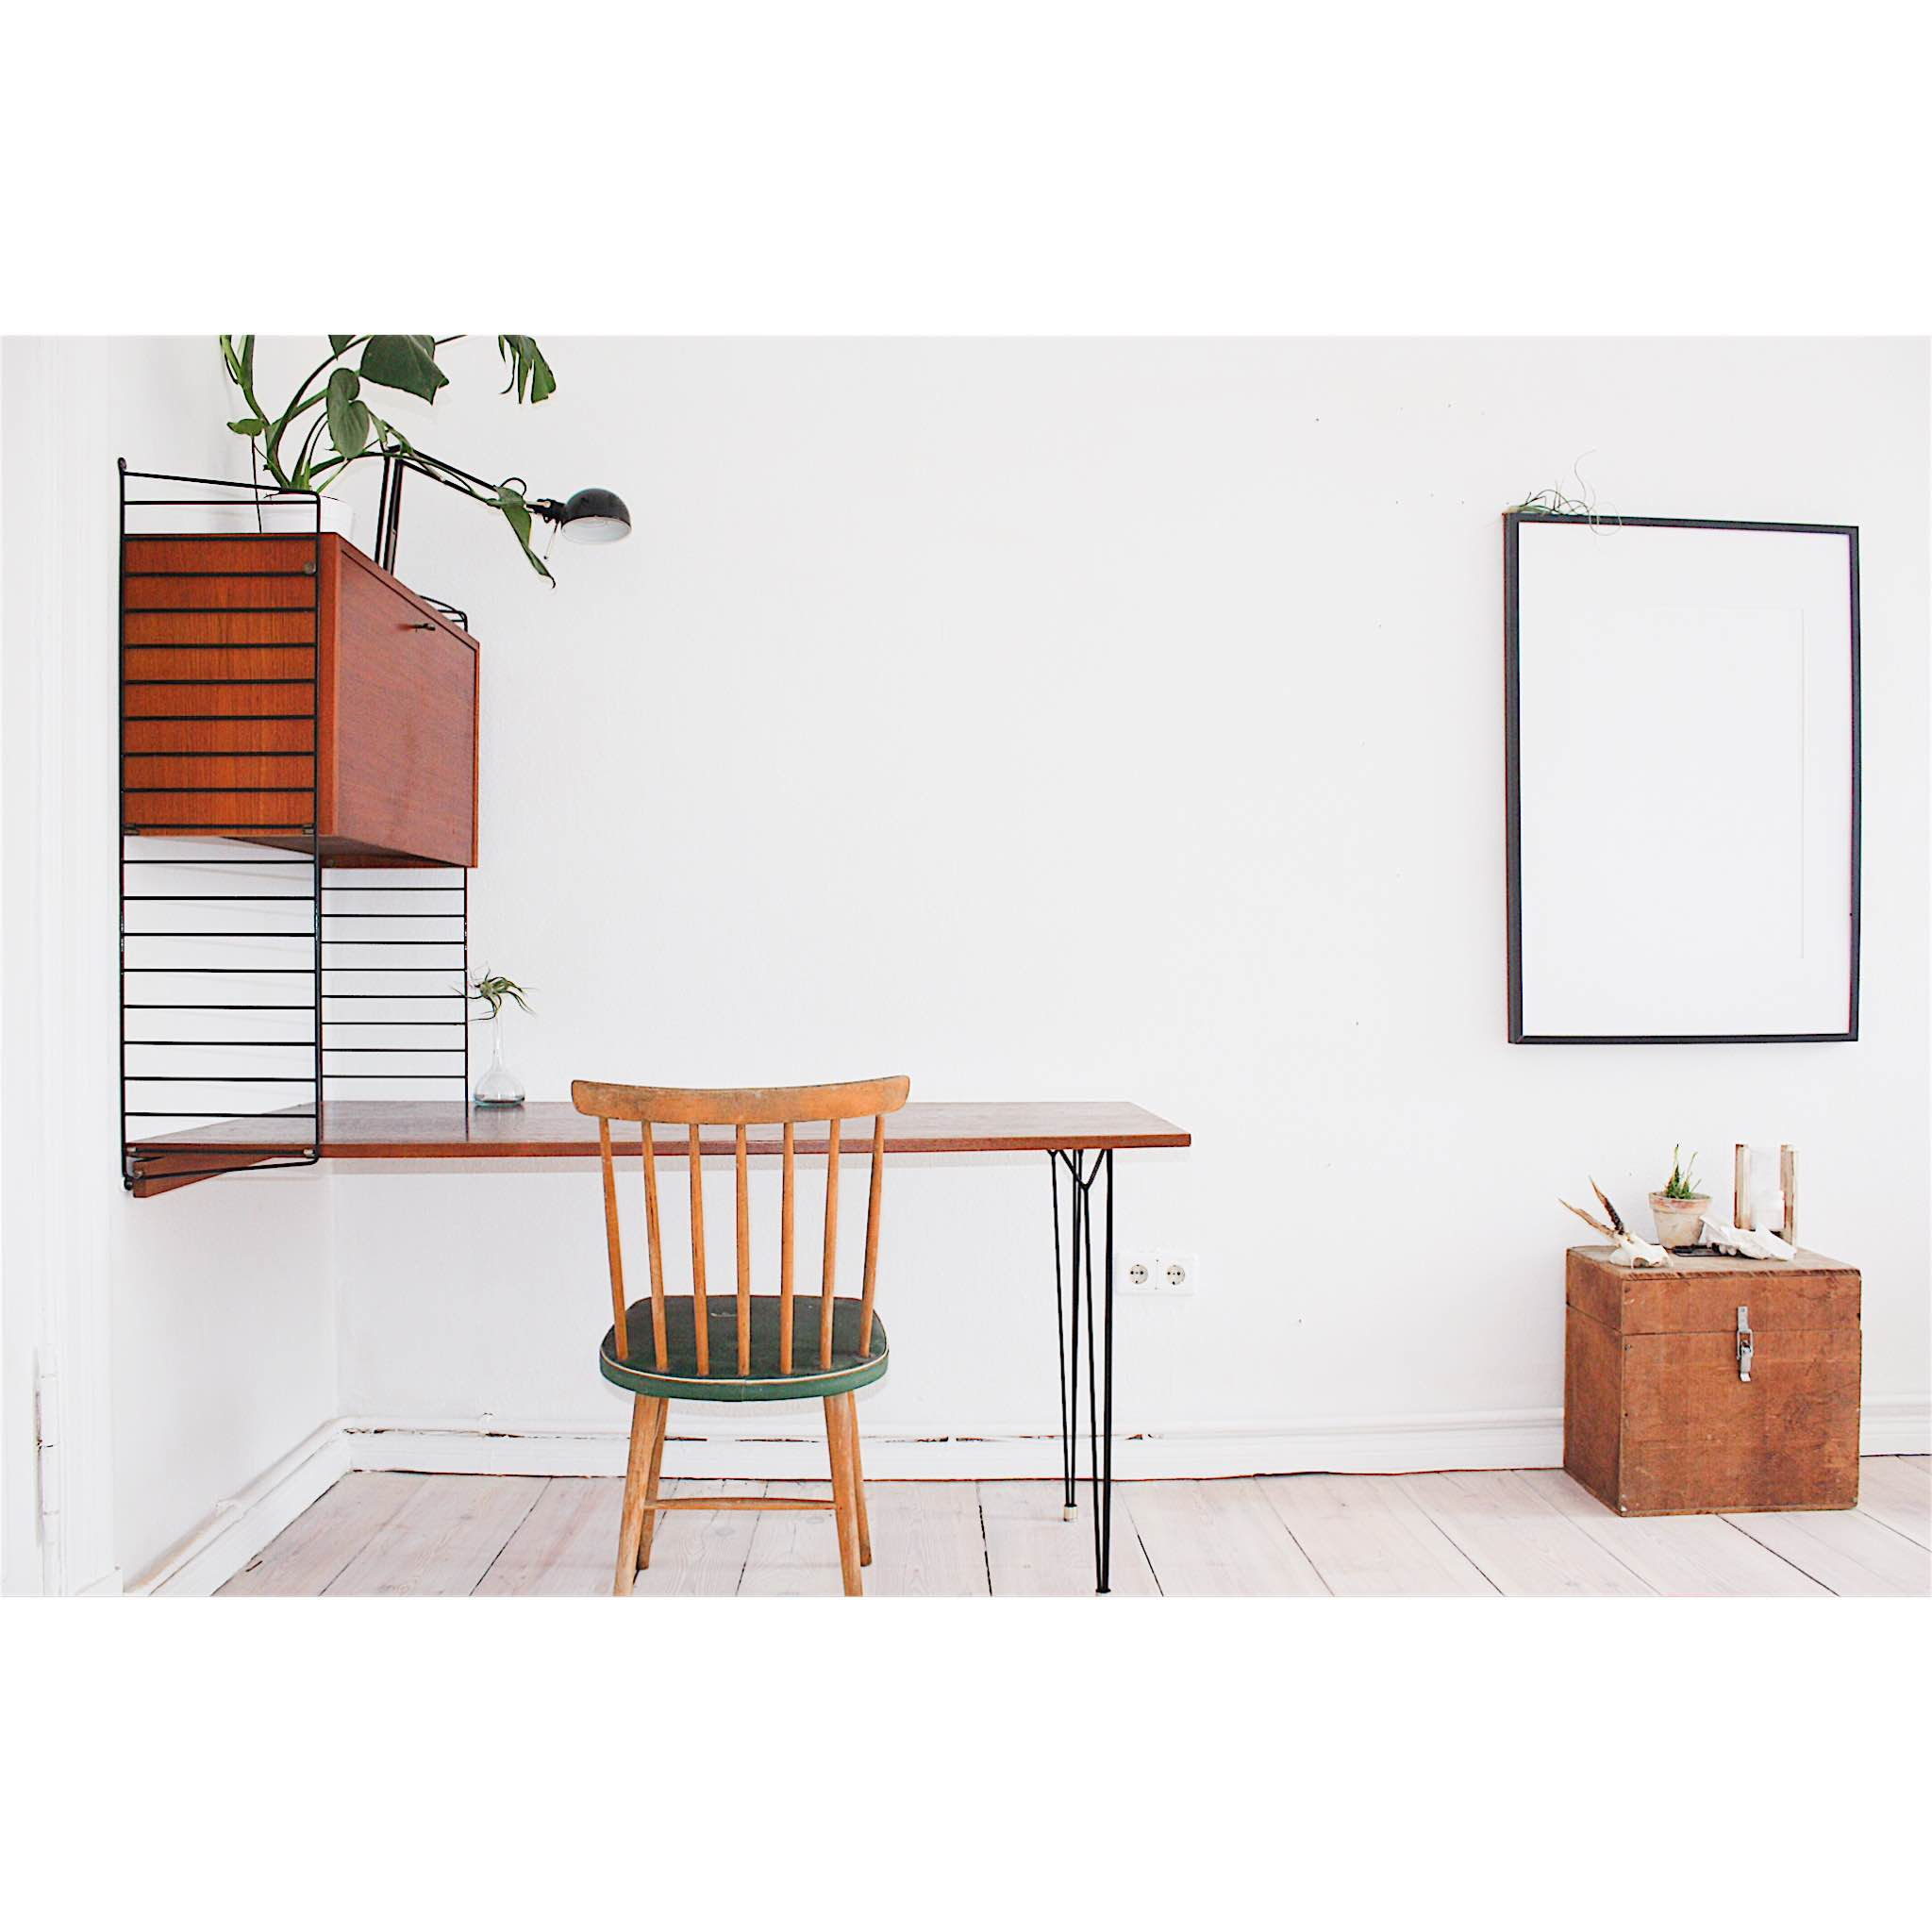 Creative interior design packages from a design studio in Berlin offering services online in Europe and worldwide with a clean, minimal and Scandinavian aesthetic